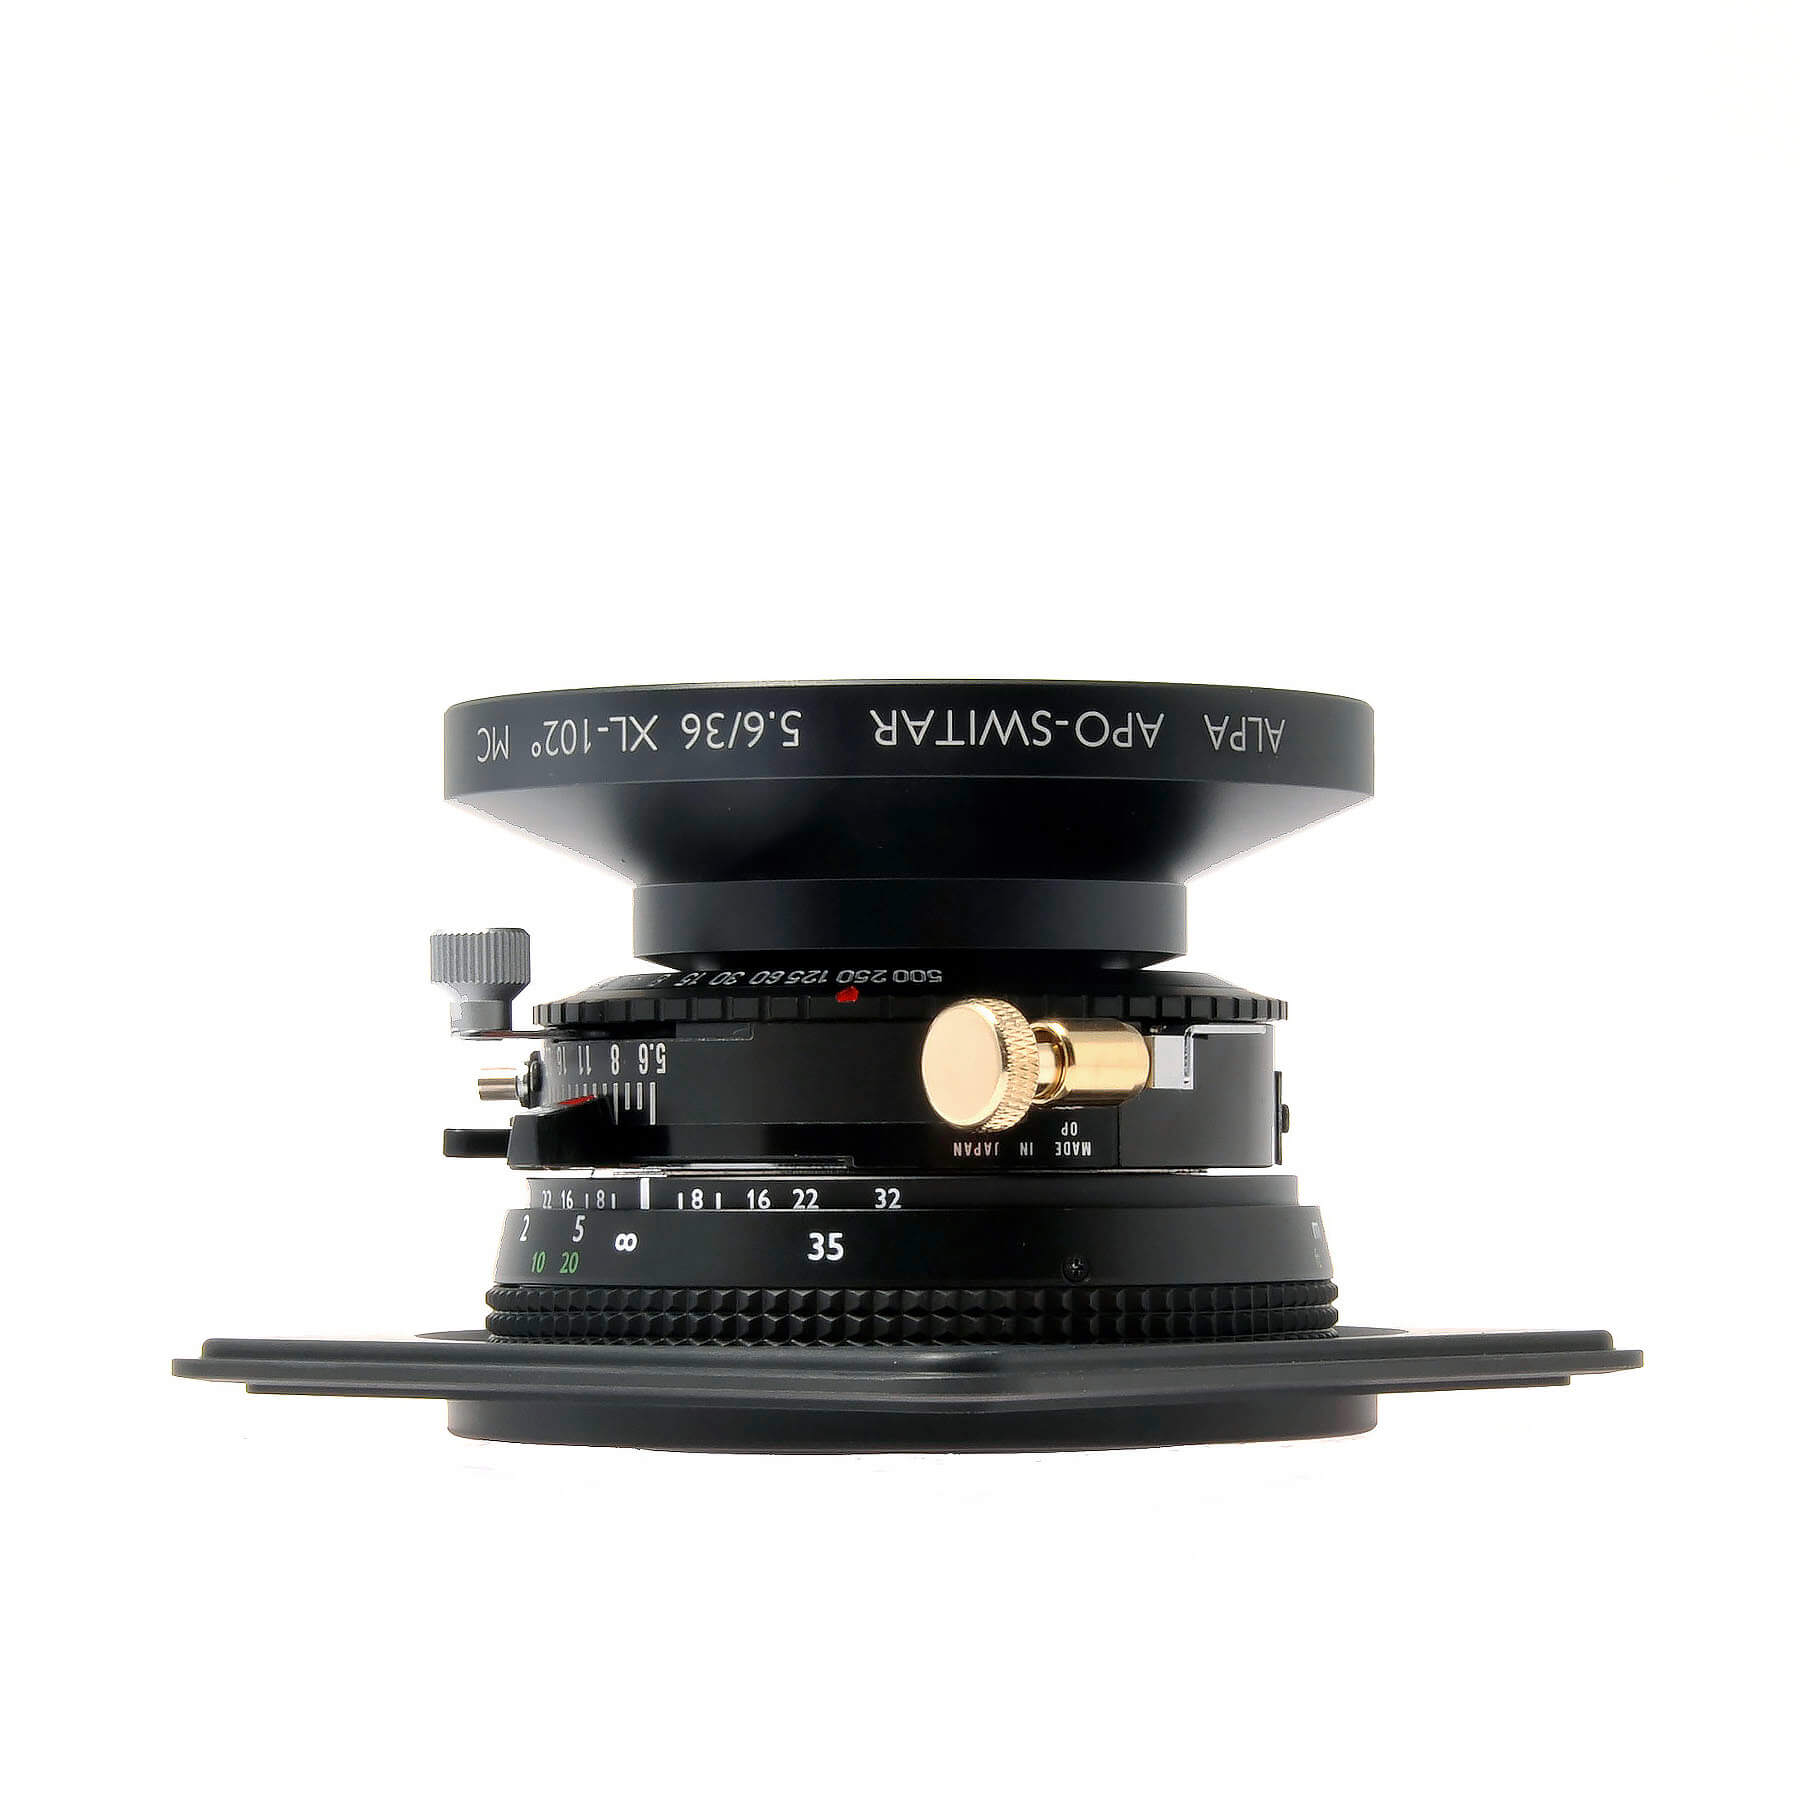 ALPA Apo Switar 5.6/36 mm